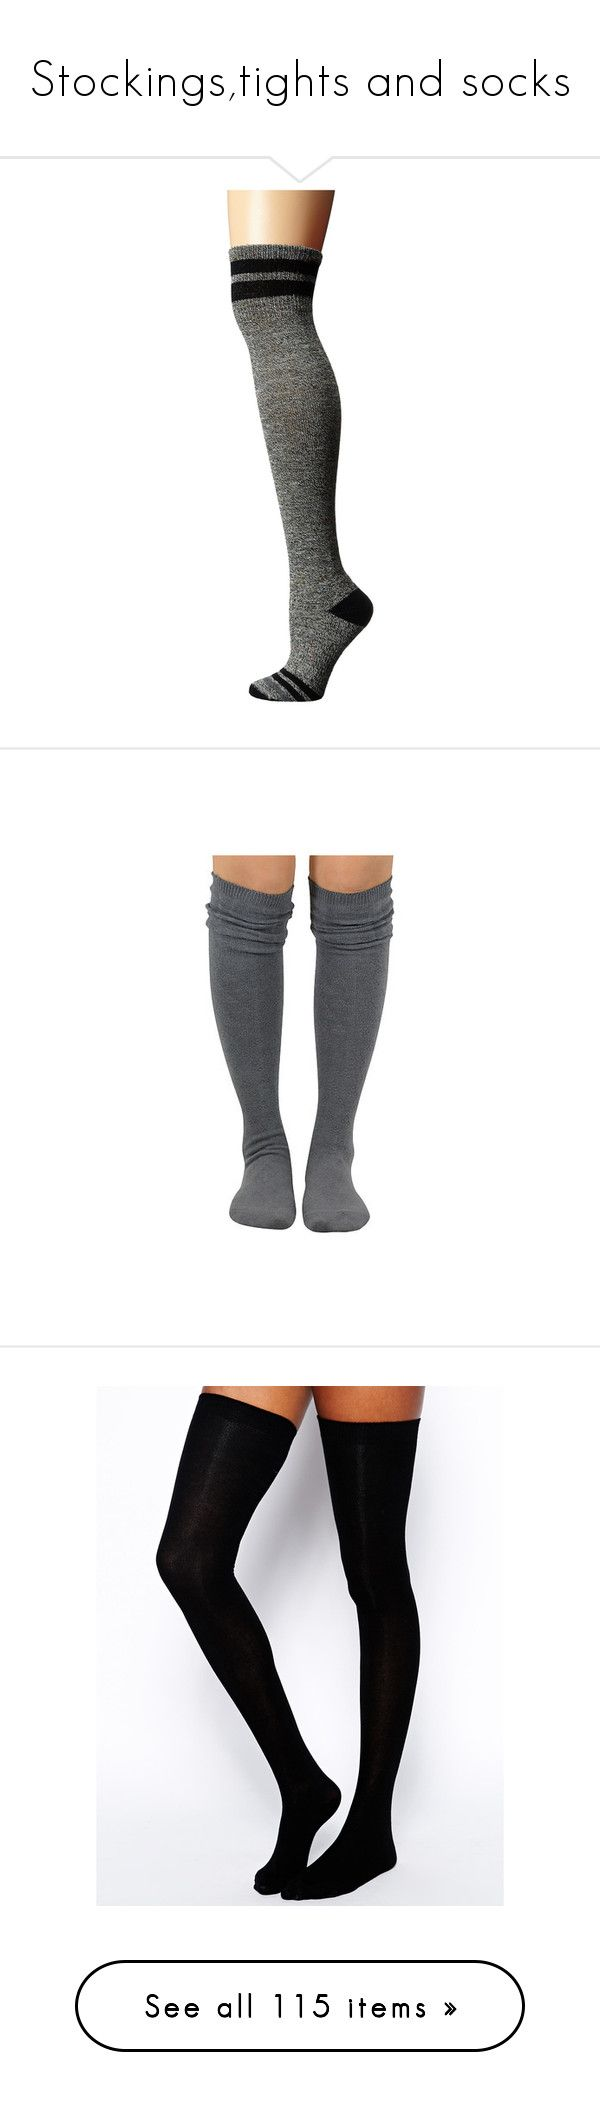 """""""Stockings,tights and socks"""" by w-illusion ❤ liked on Polyvore featuring intimates, hosiery, socks, thigh high knee socks, knee socks, tube socks, knee high socks, wool knee high socks, chunky cable knit socks and chunky cable knit thigh high socks"""